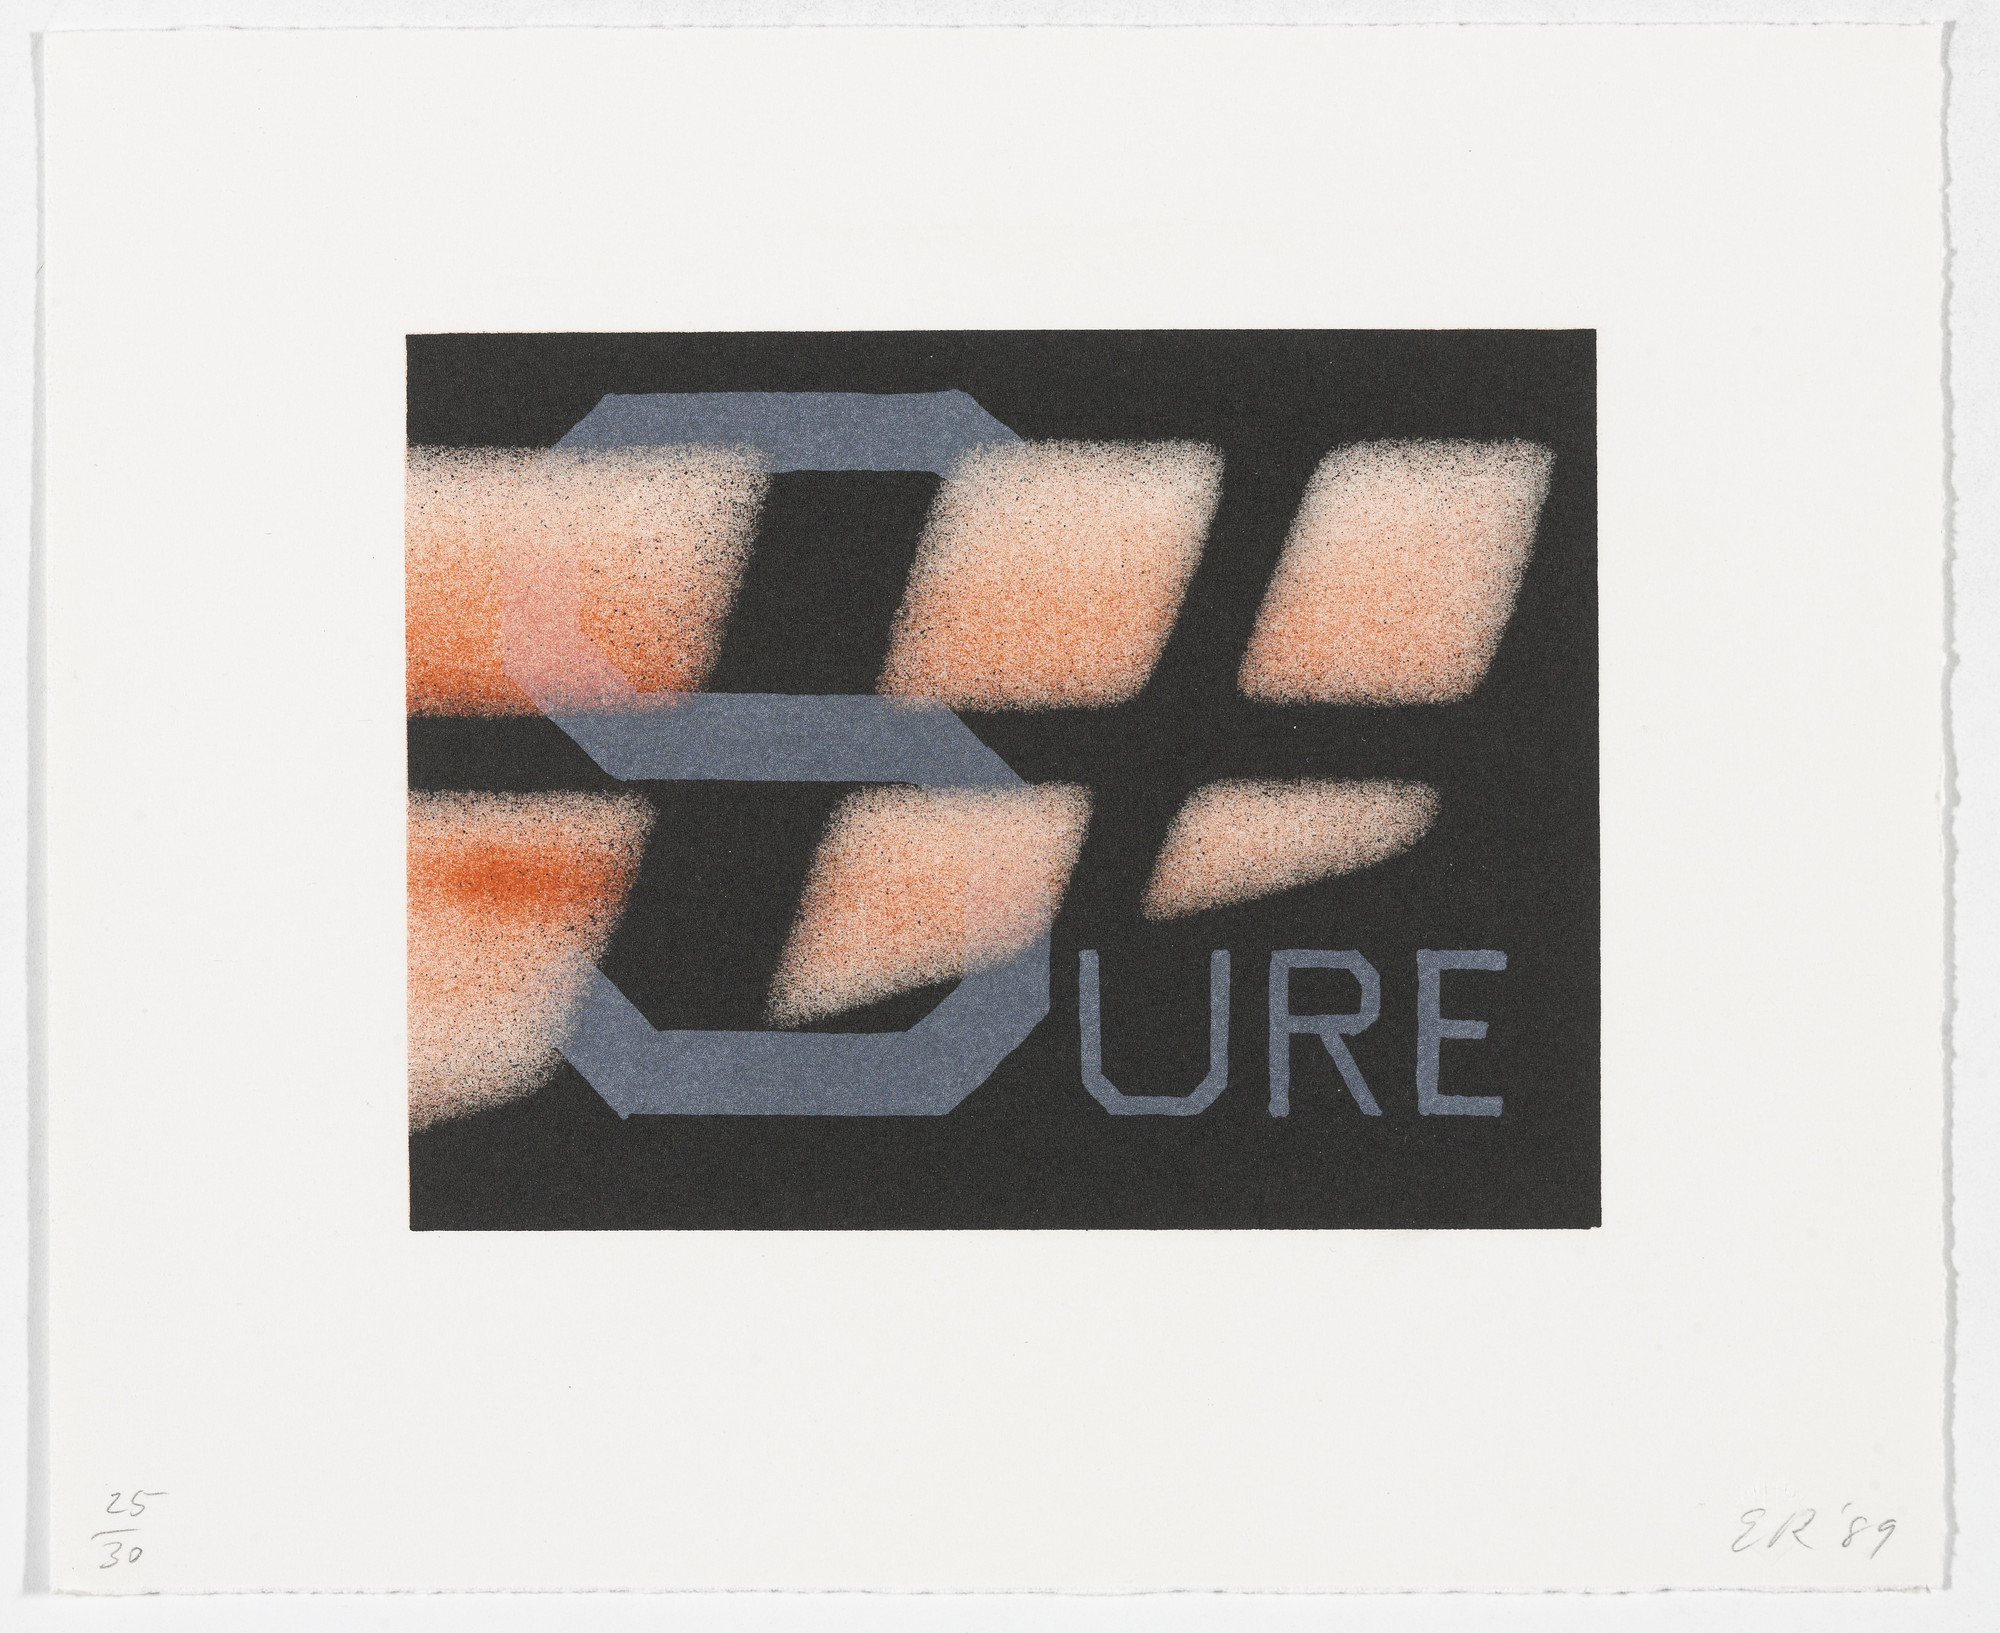 Edward Ruscha. Sure from That Is Right And Other Similarities. 1989